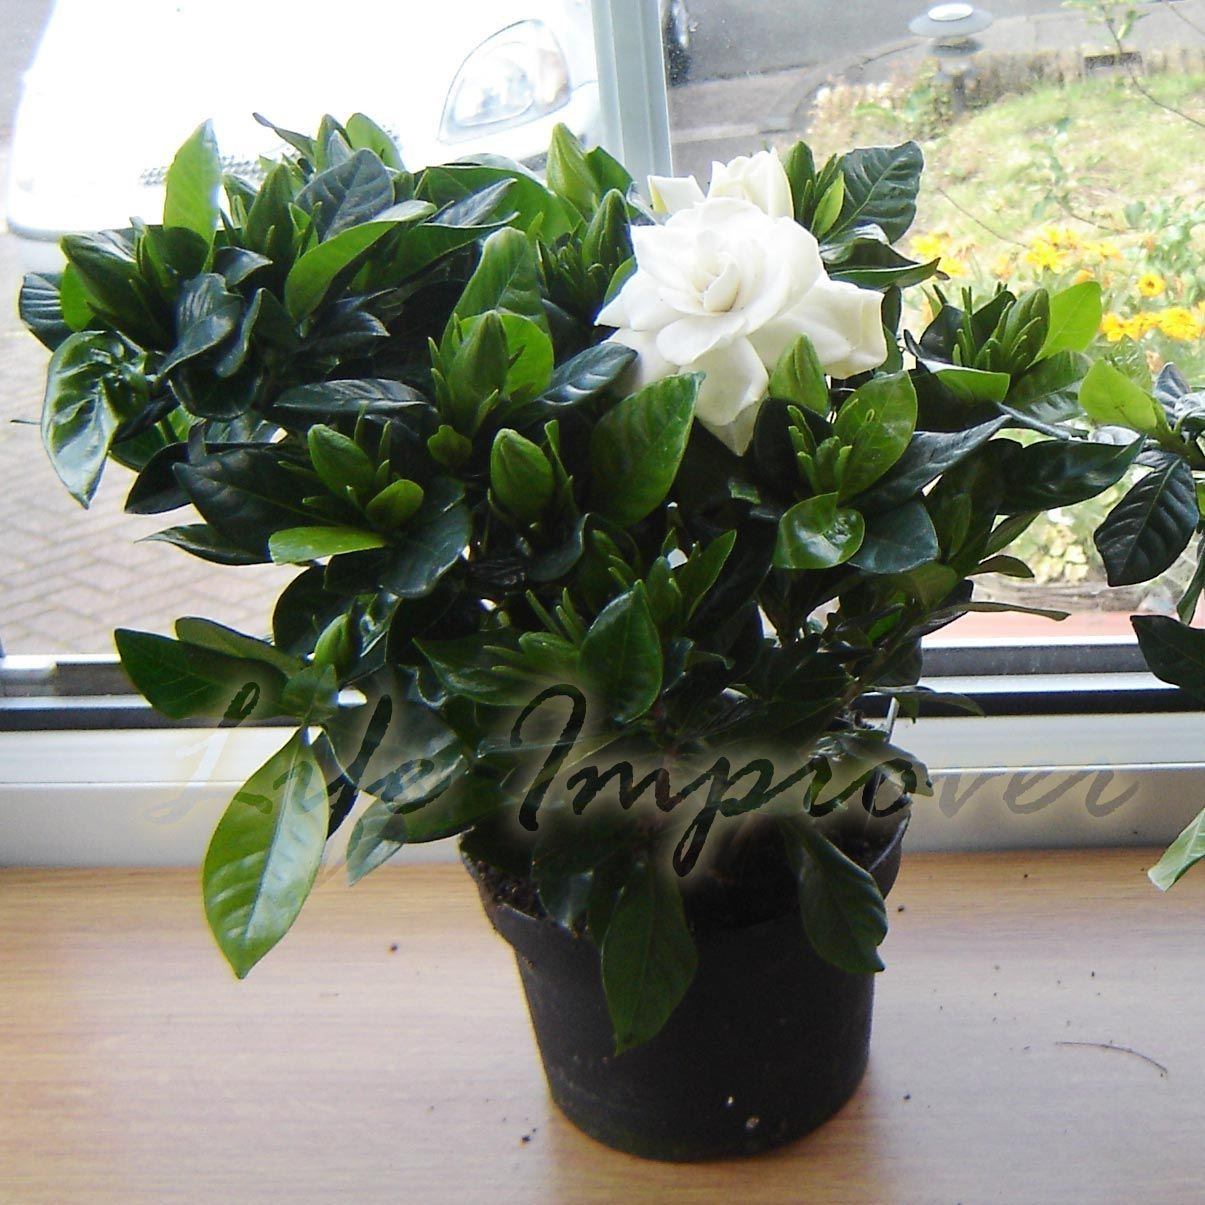 1 SCENTED GARDENIA JASMINE EVERGREEN INDOORN HOUSE PLANT IN POT GARDEN - 15-20cm Tall (Including Pot) Life Improver